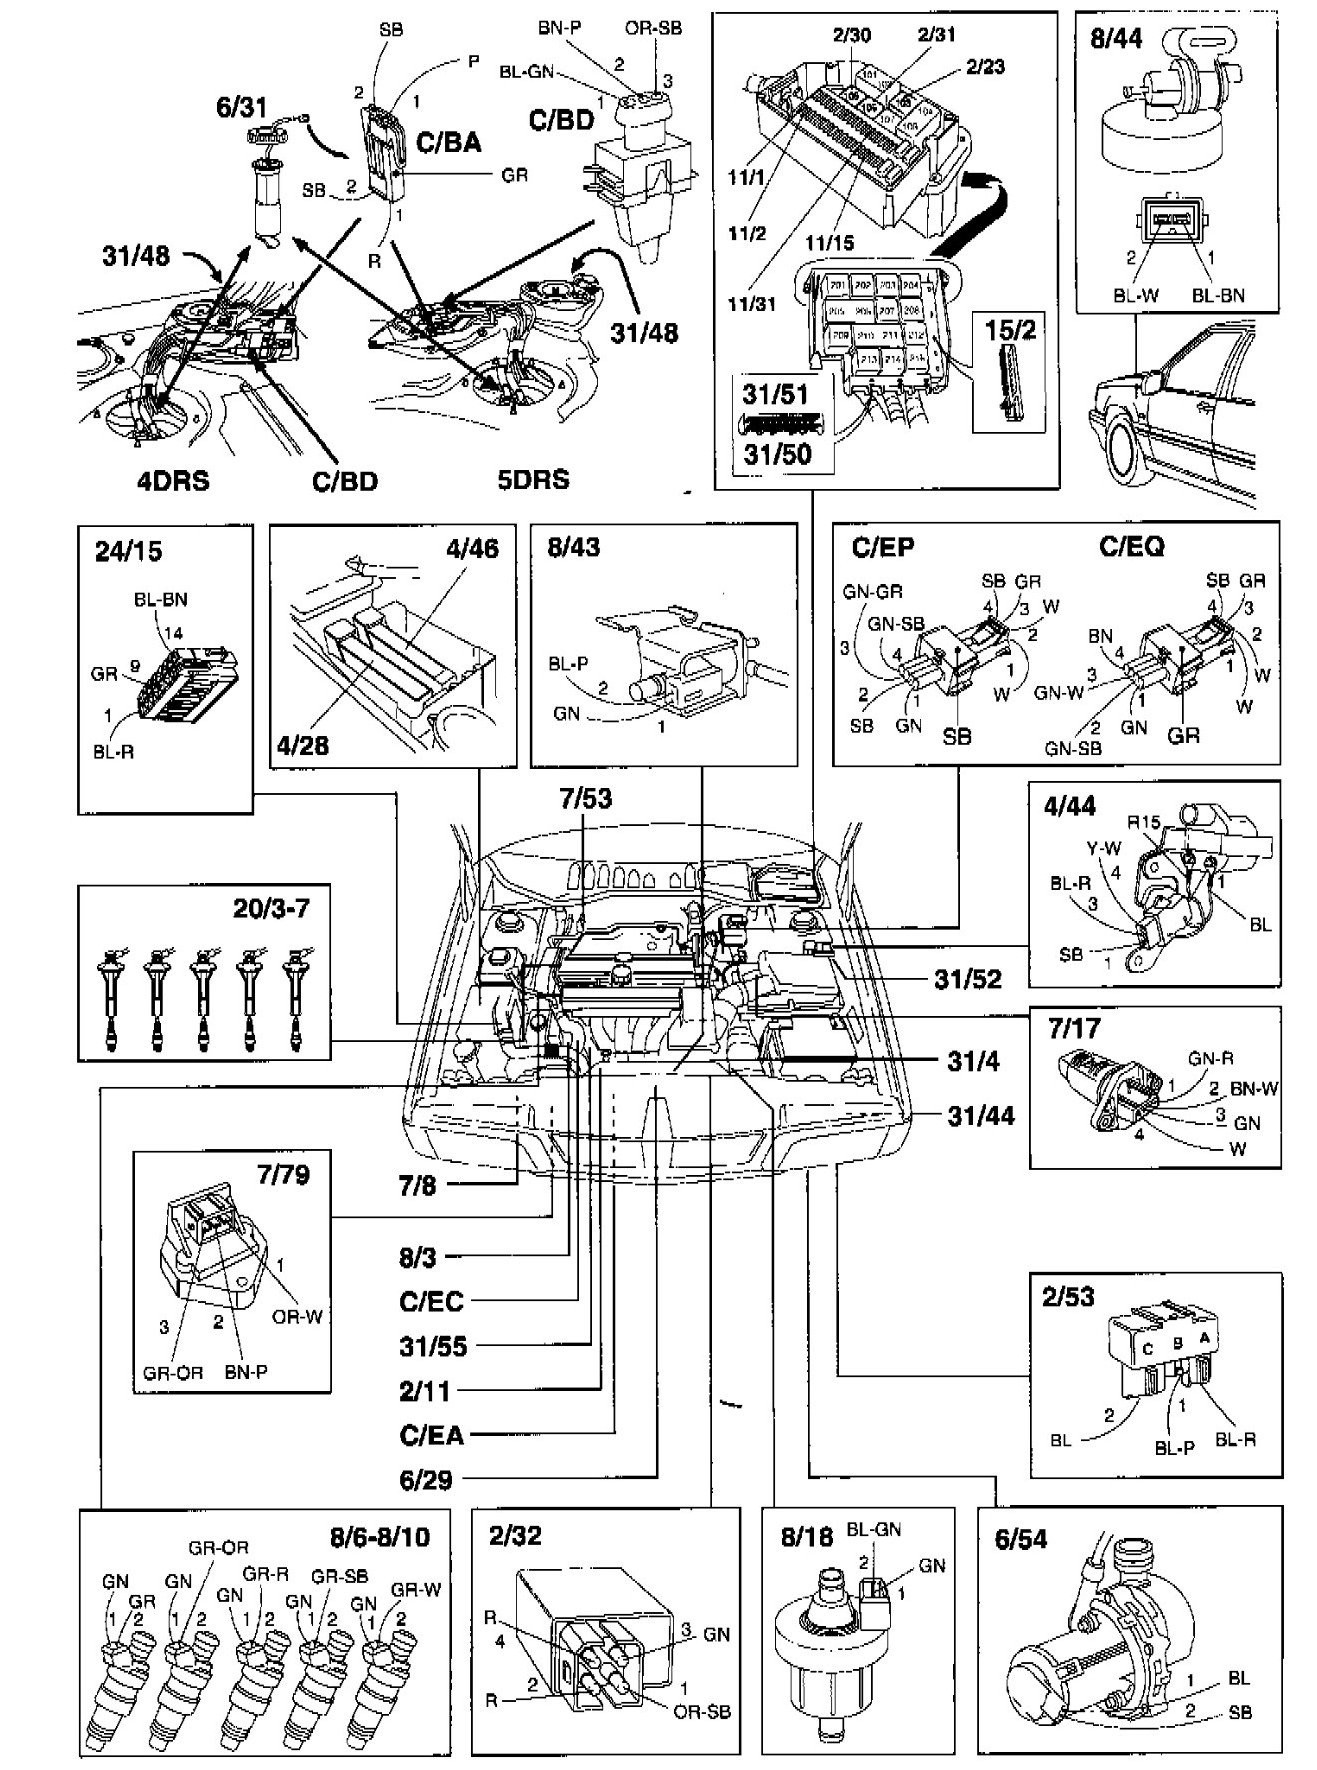 Honda c70 engine diagram wiring diagram 2001 c70 convertible wiring honda c70 engine diagram wiring diagram 2001 c70 convertible wiring wiring diagrams of honda c70 engine asfbconference2016 Gallery